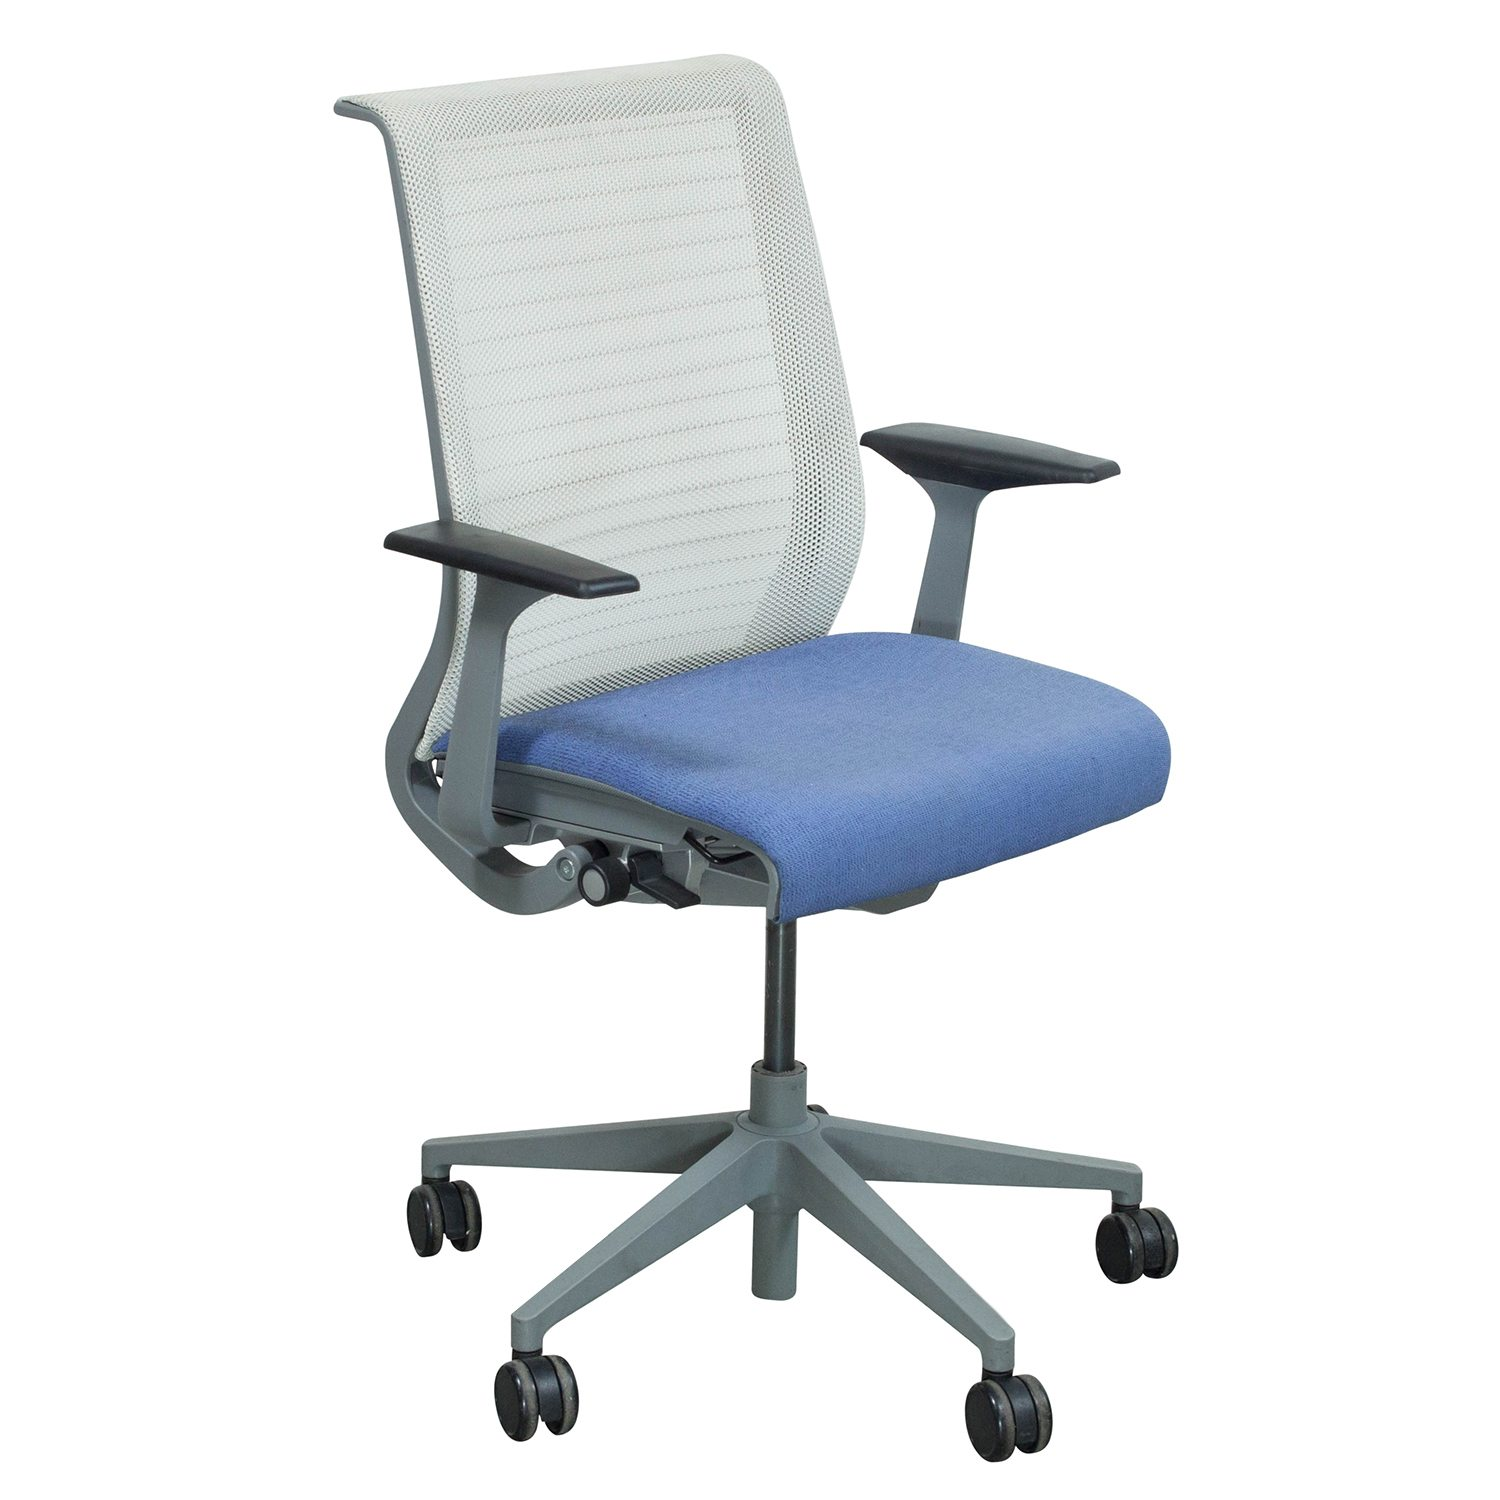 Steelcase Chairs Steelcase Think Used Mesh Back Conference Chair Lavender